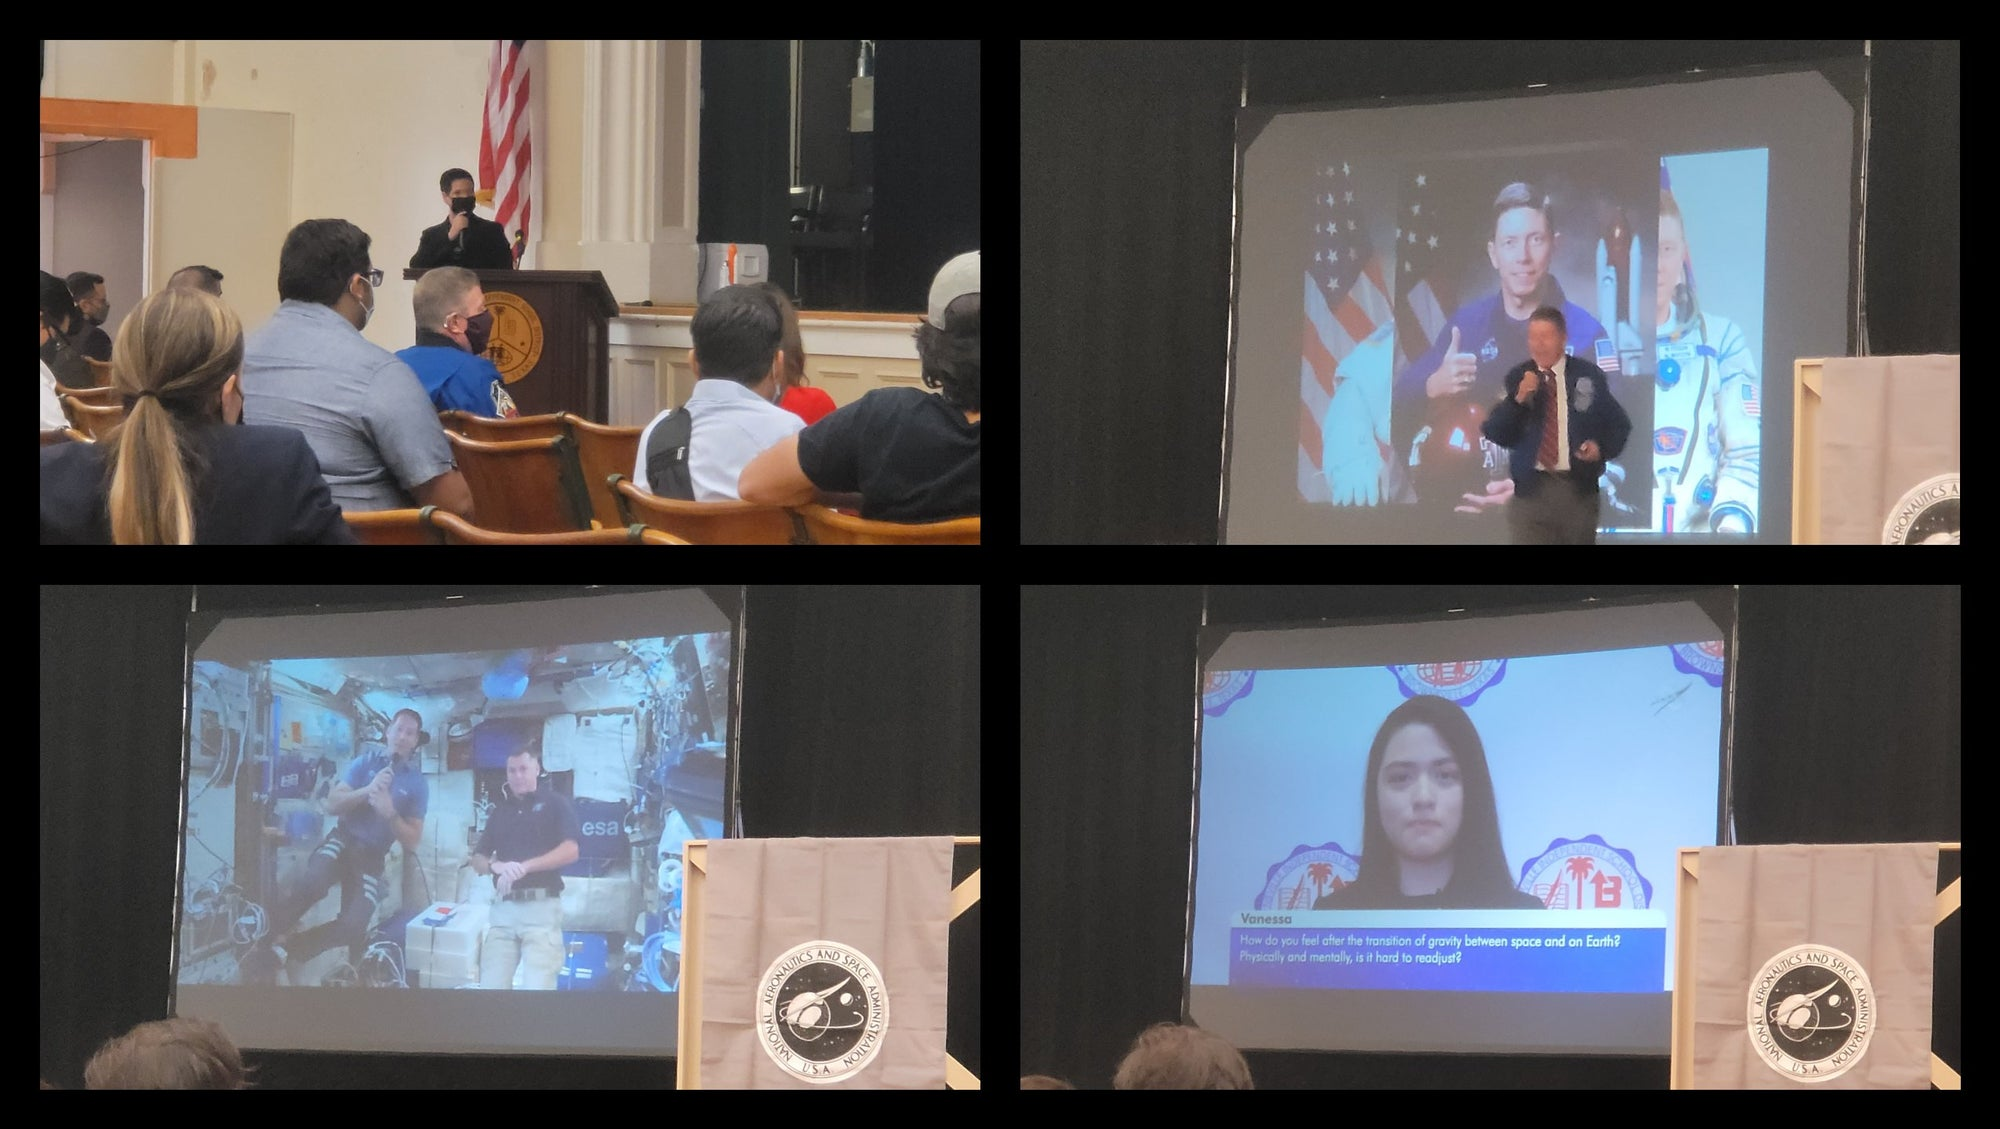 SpaceX Crew-2 Astronauts Answer Brownsville Texas Students Questions From ISS & STARS Hosts Panel Discussion